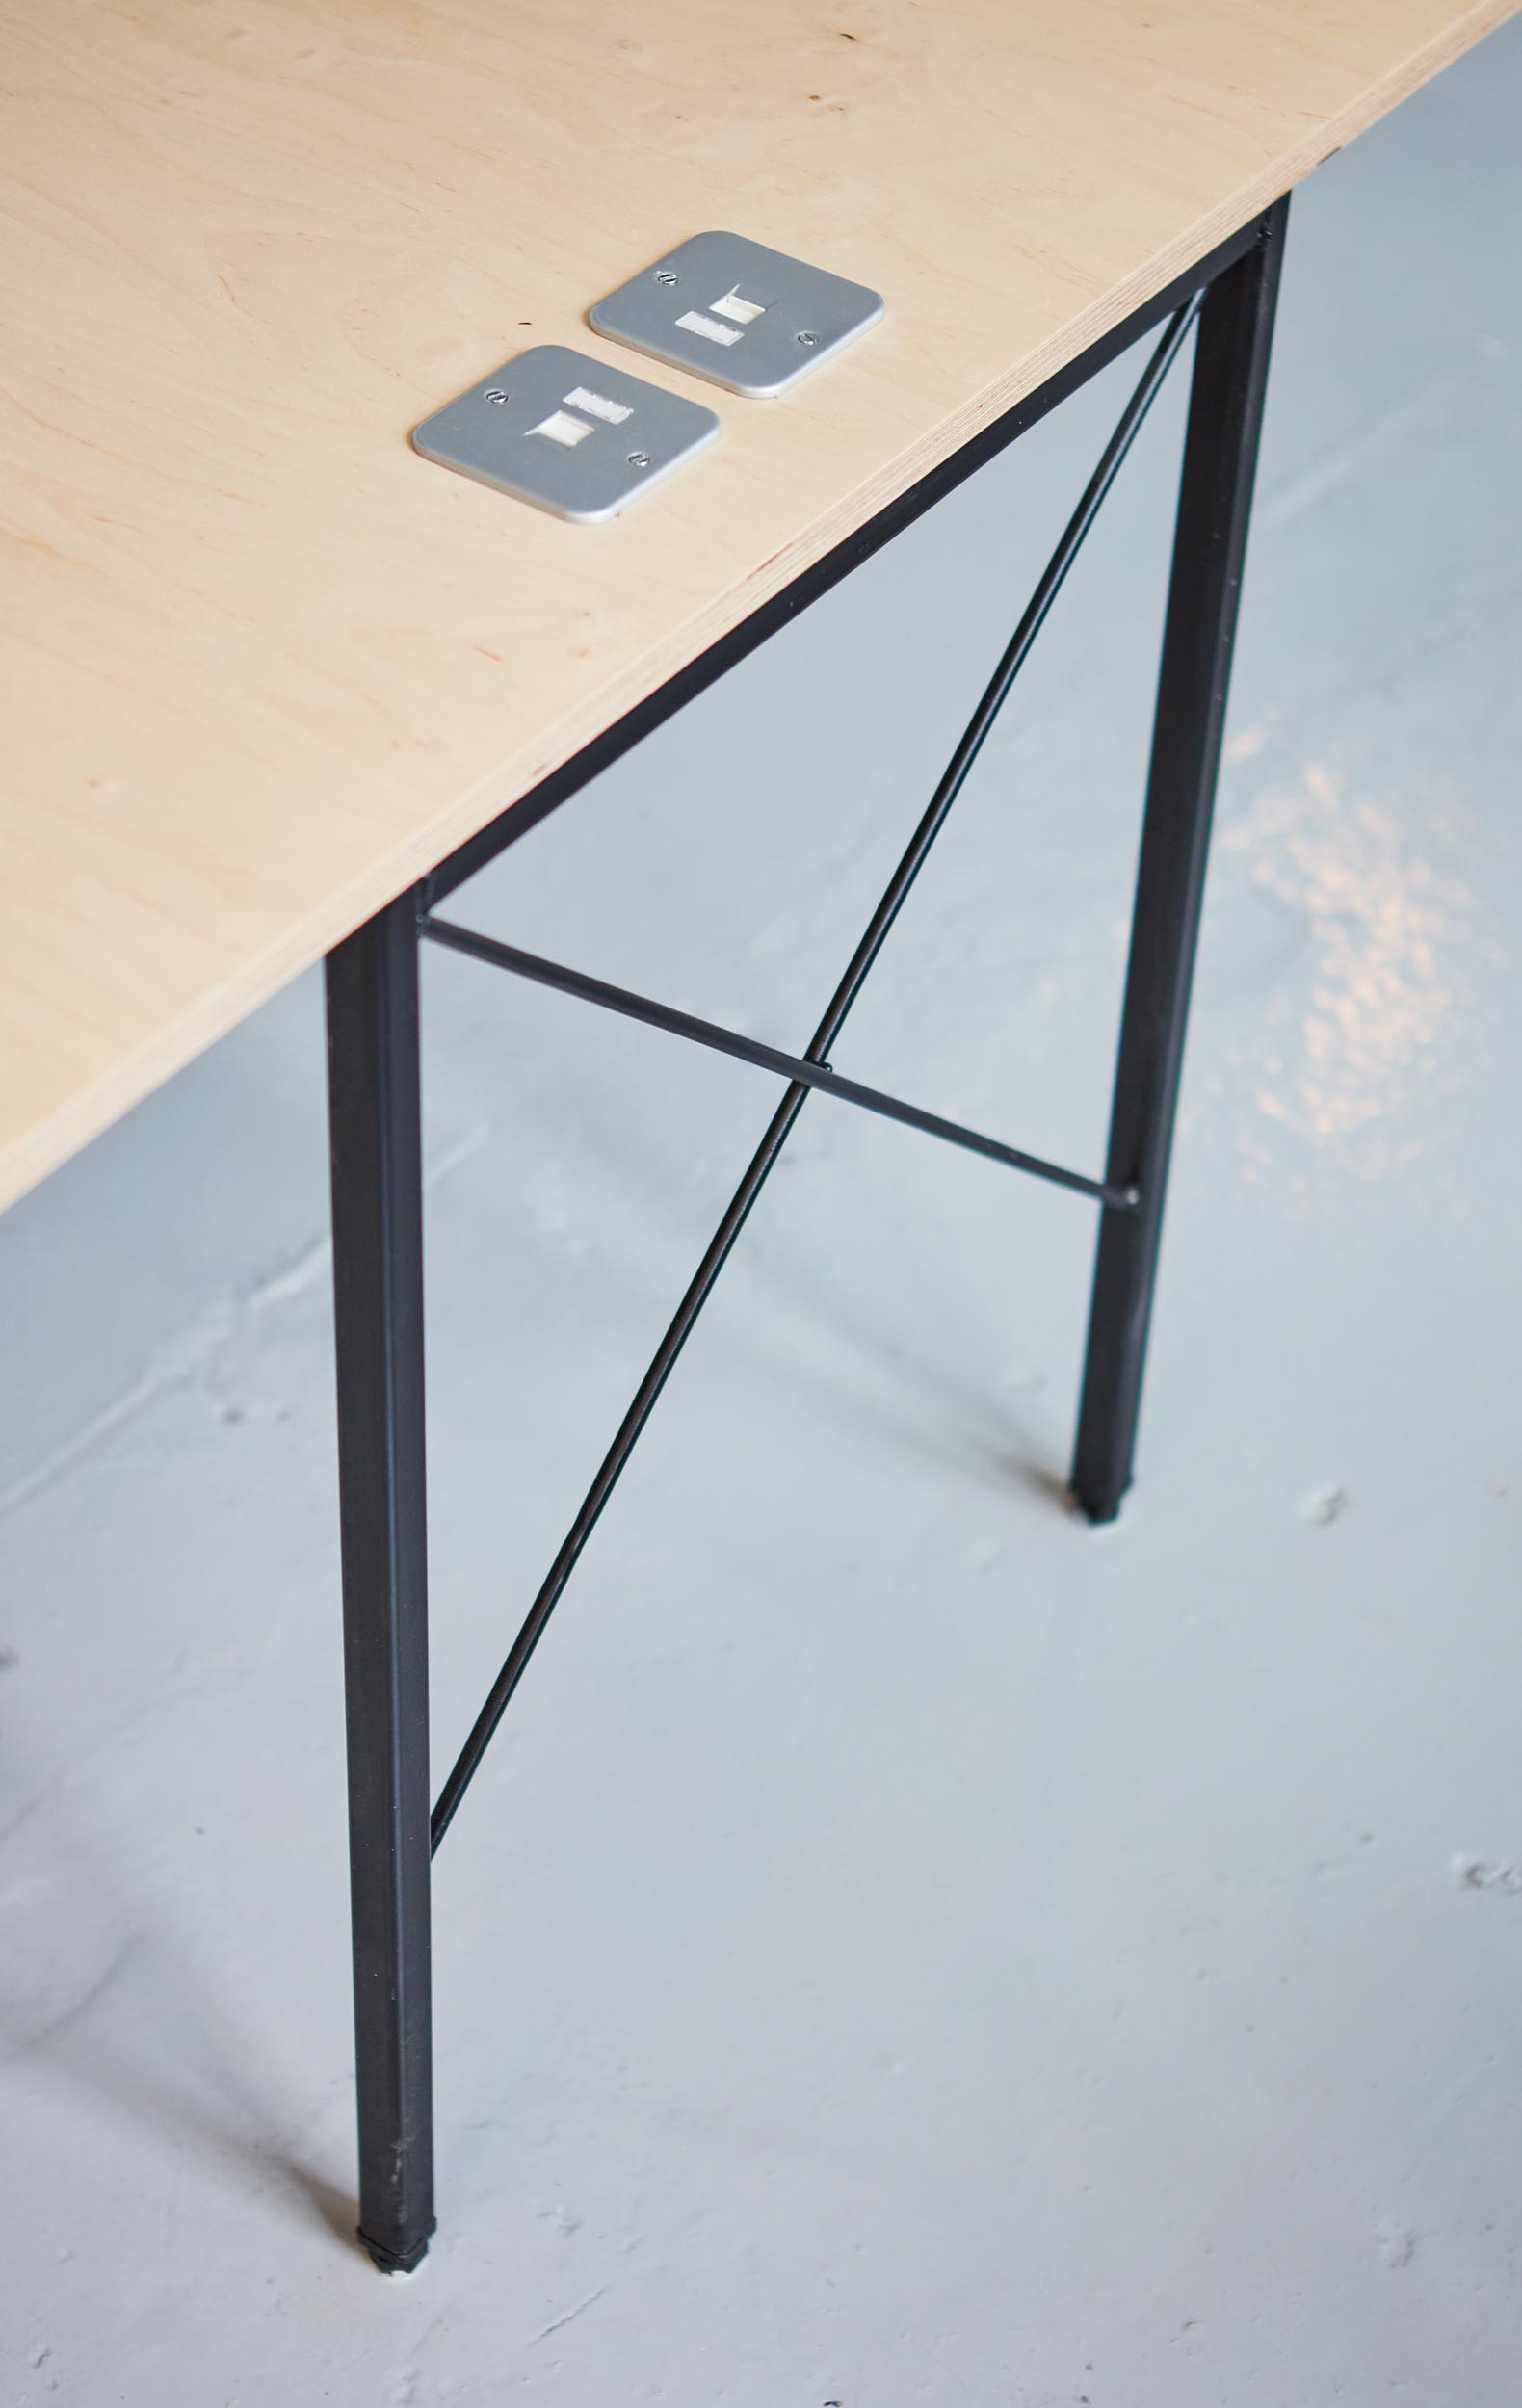 Metalwork - Office Club - RYE Design